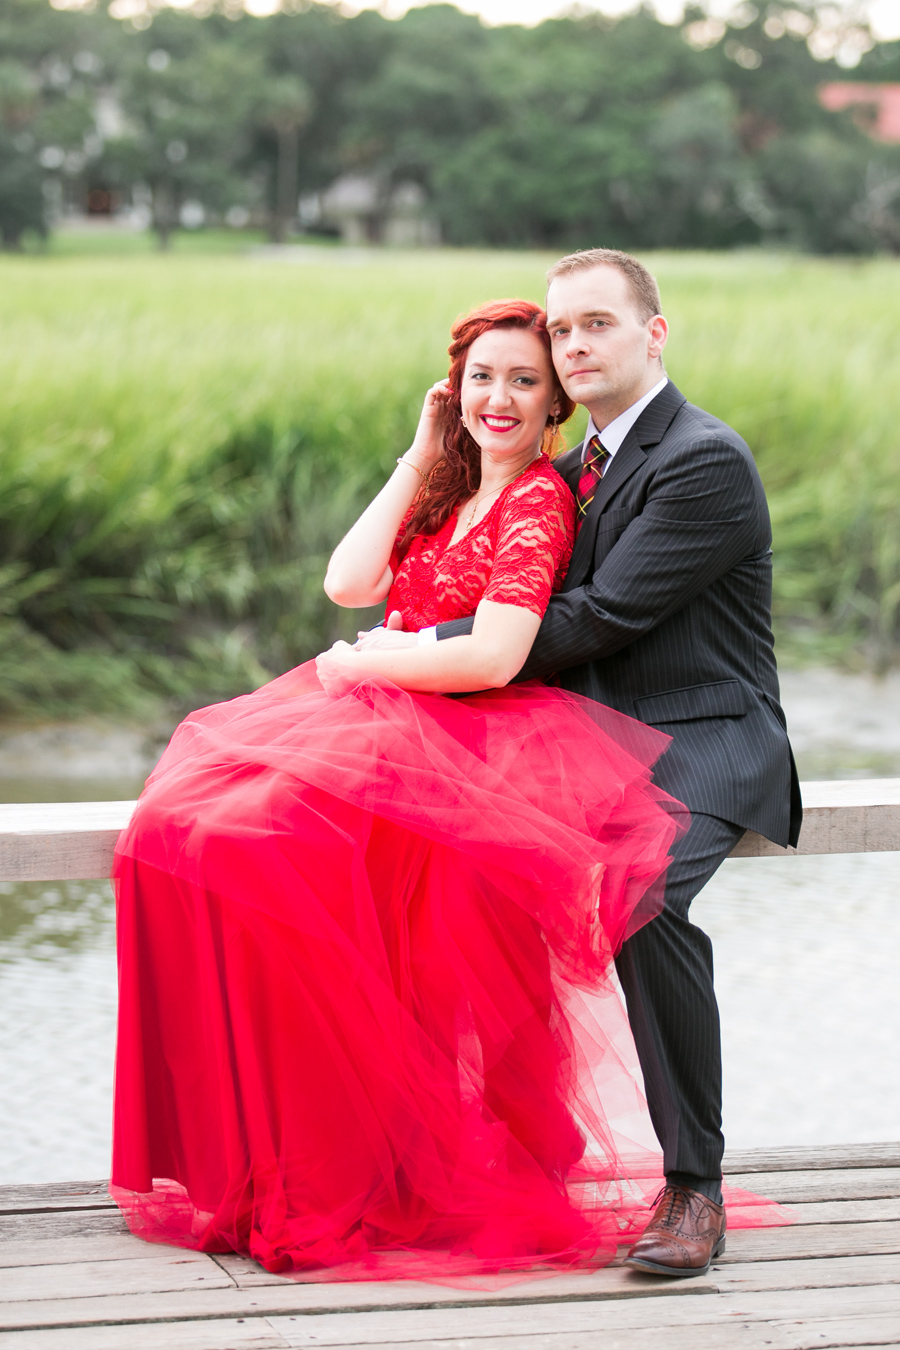 086-Romantic-Boone-Hall-wedding-anniversary-photography-by-Carolina-Photosmith-